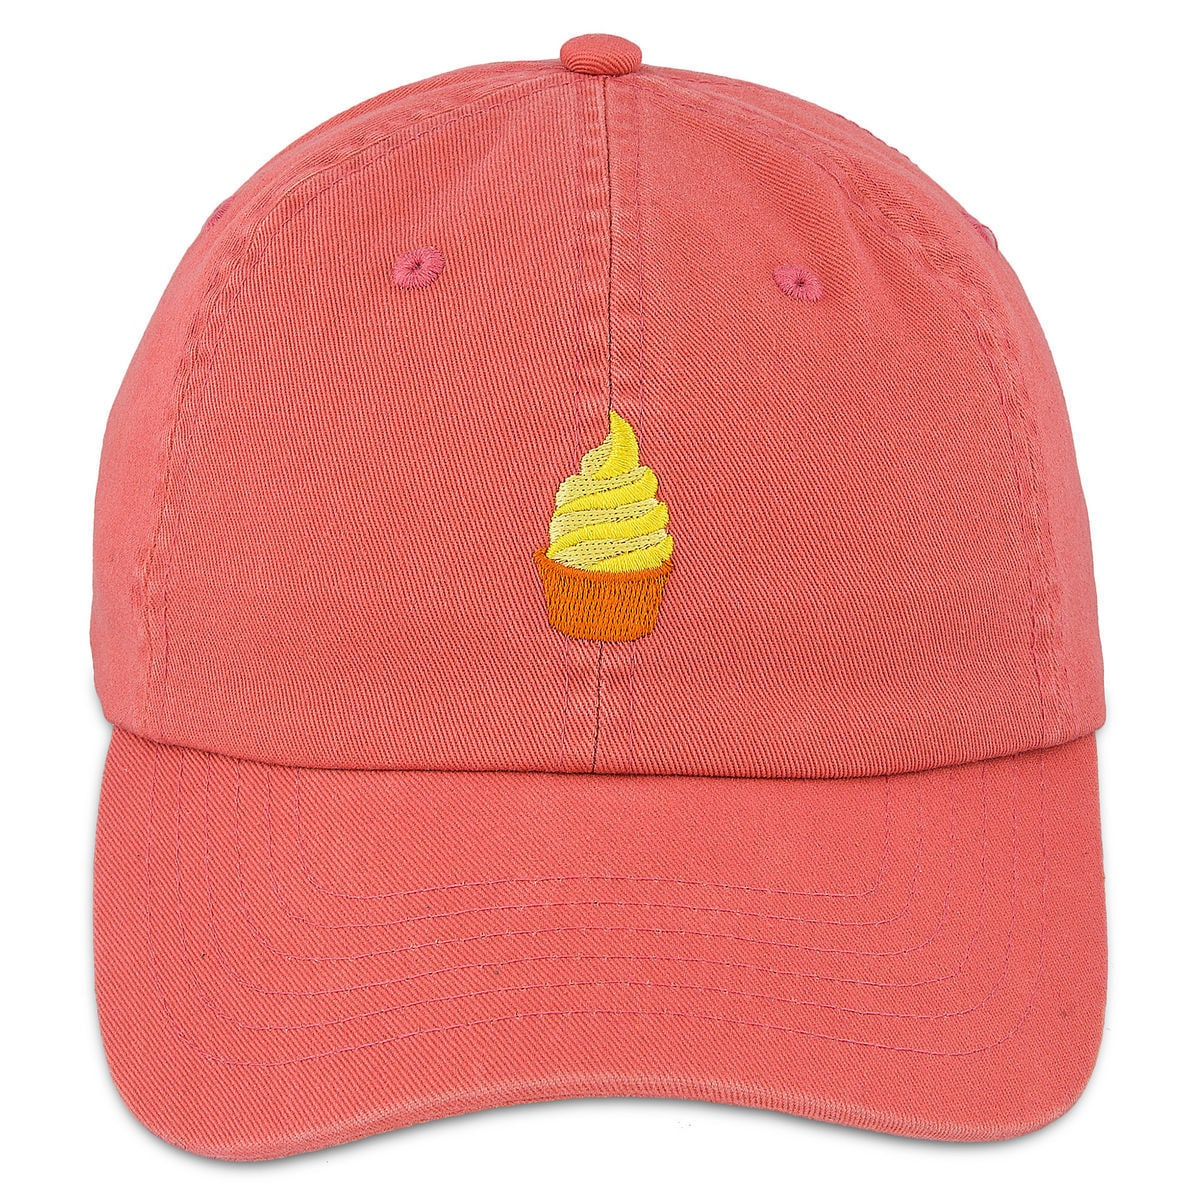 Product Image of Adventureland Pineapple Treat Baseball Cap for Adults   1 928ed84e9010